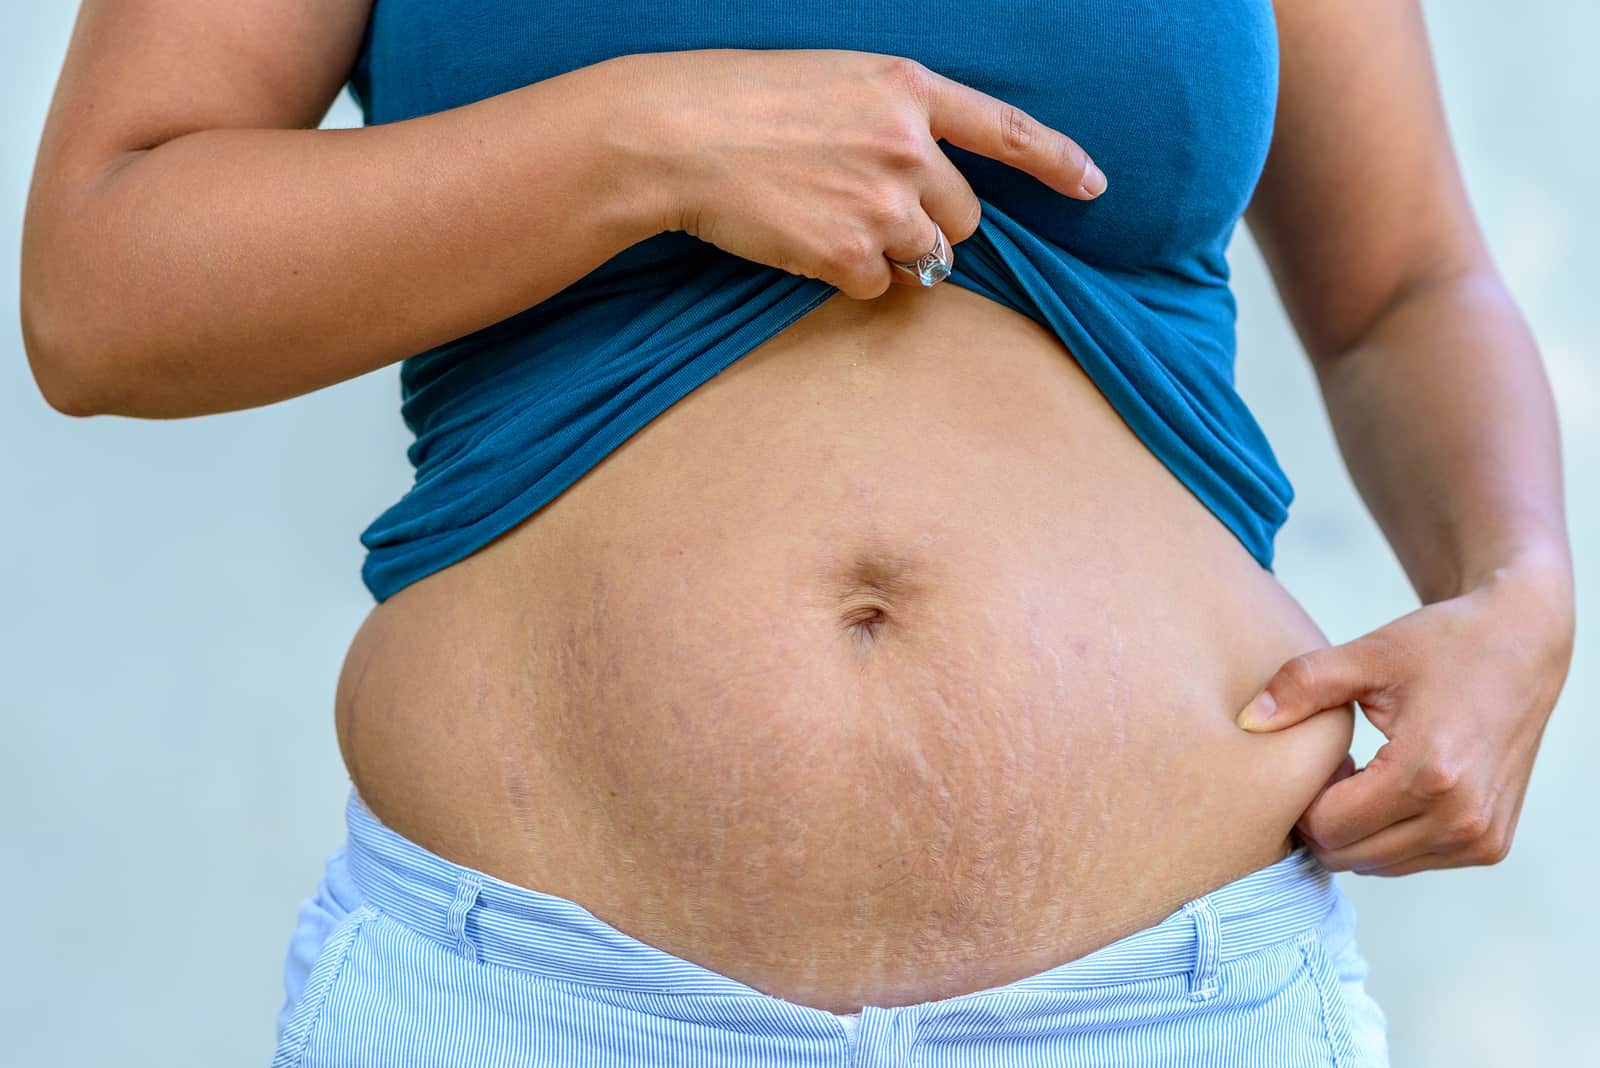 Preventing stretch marks